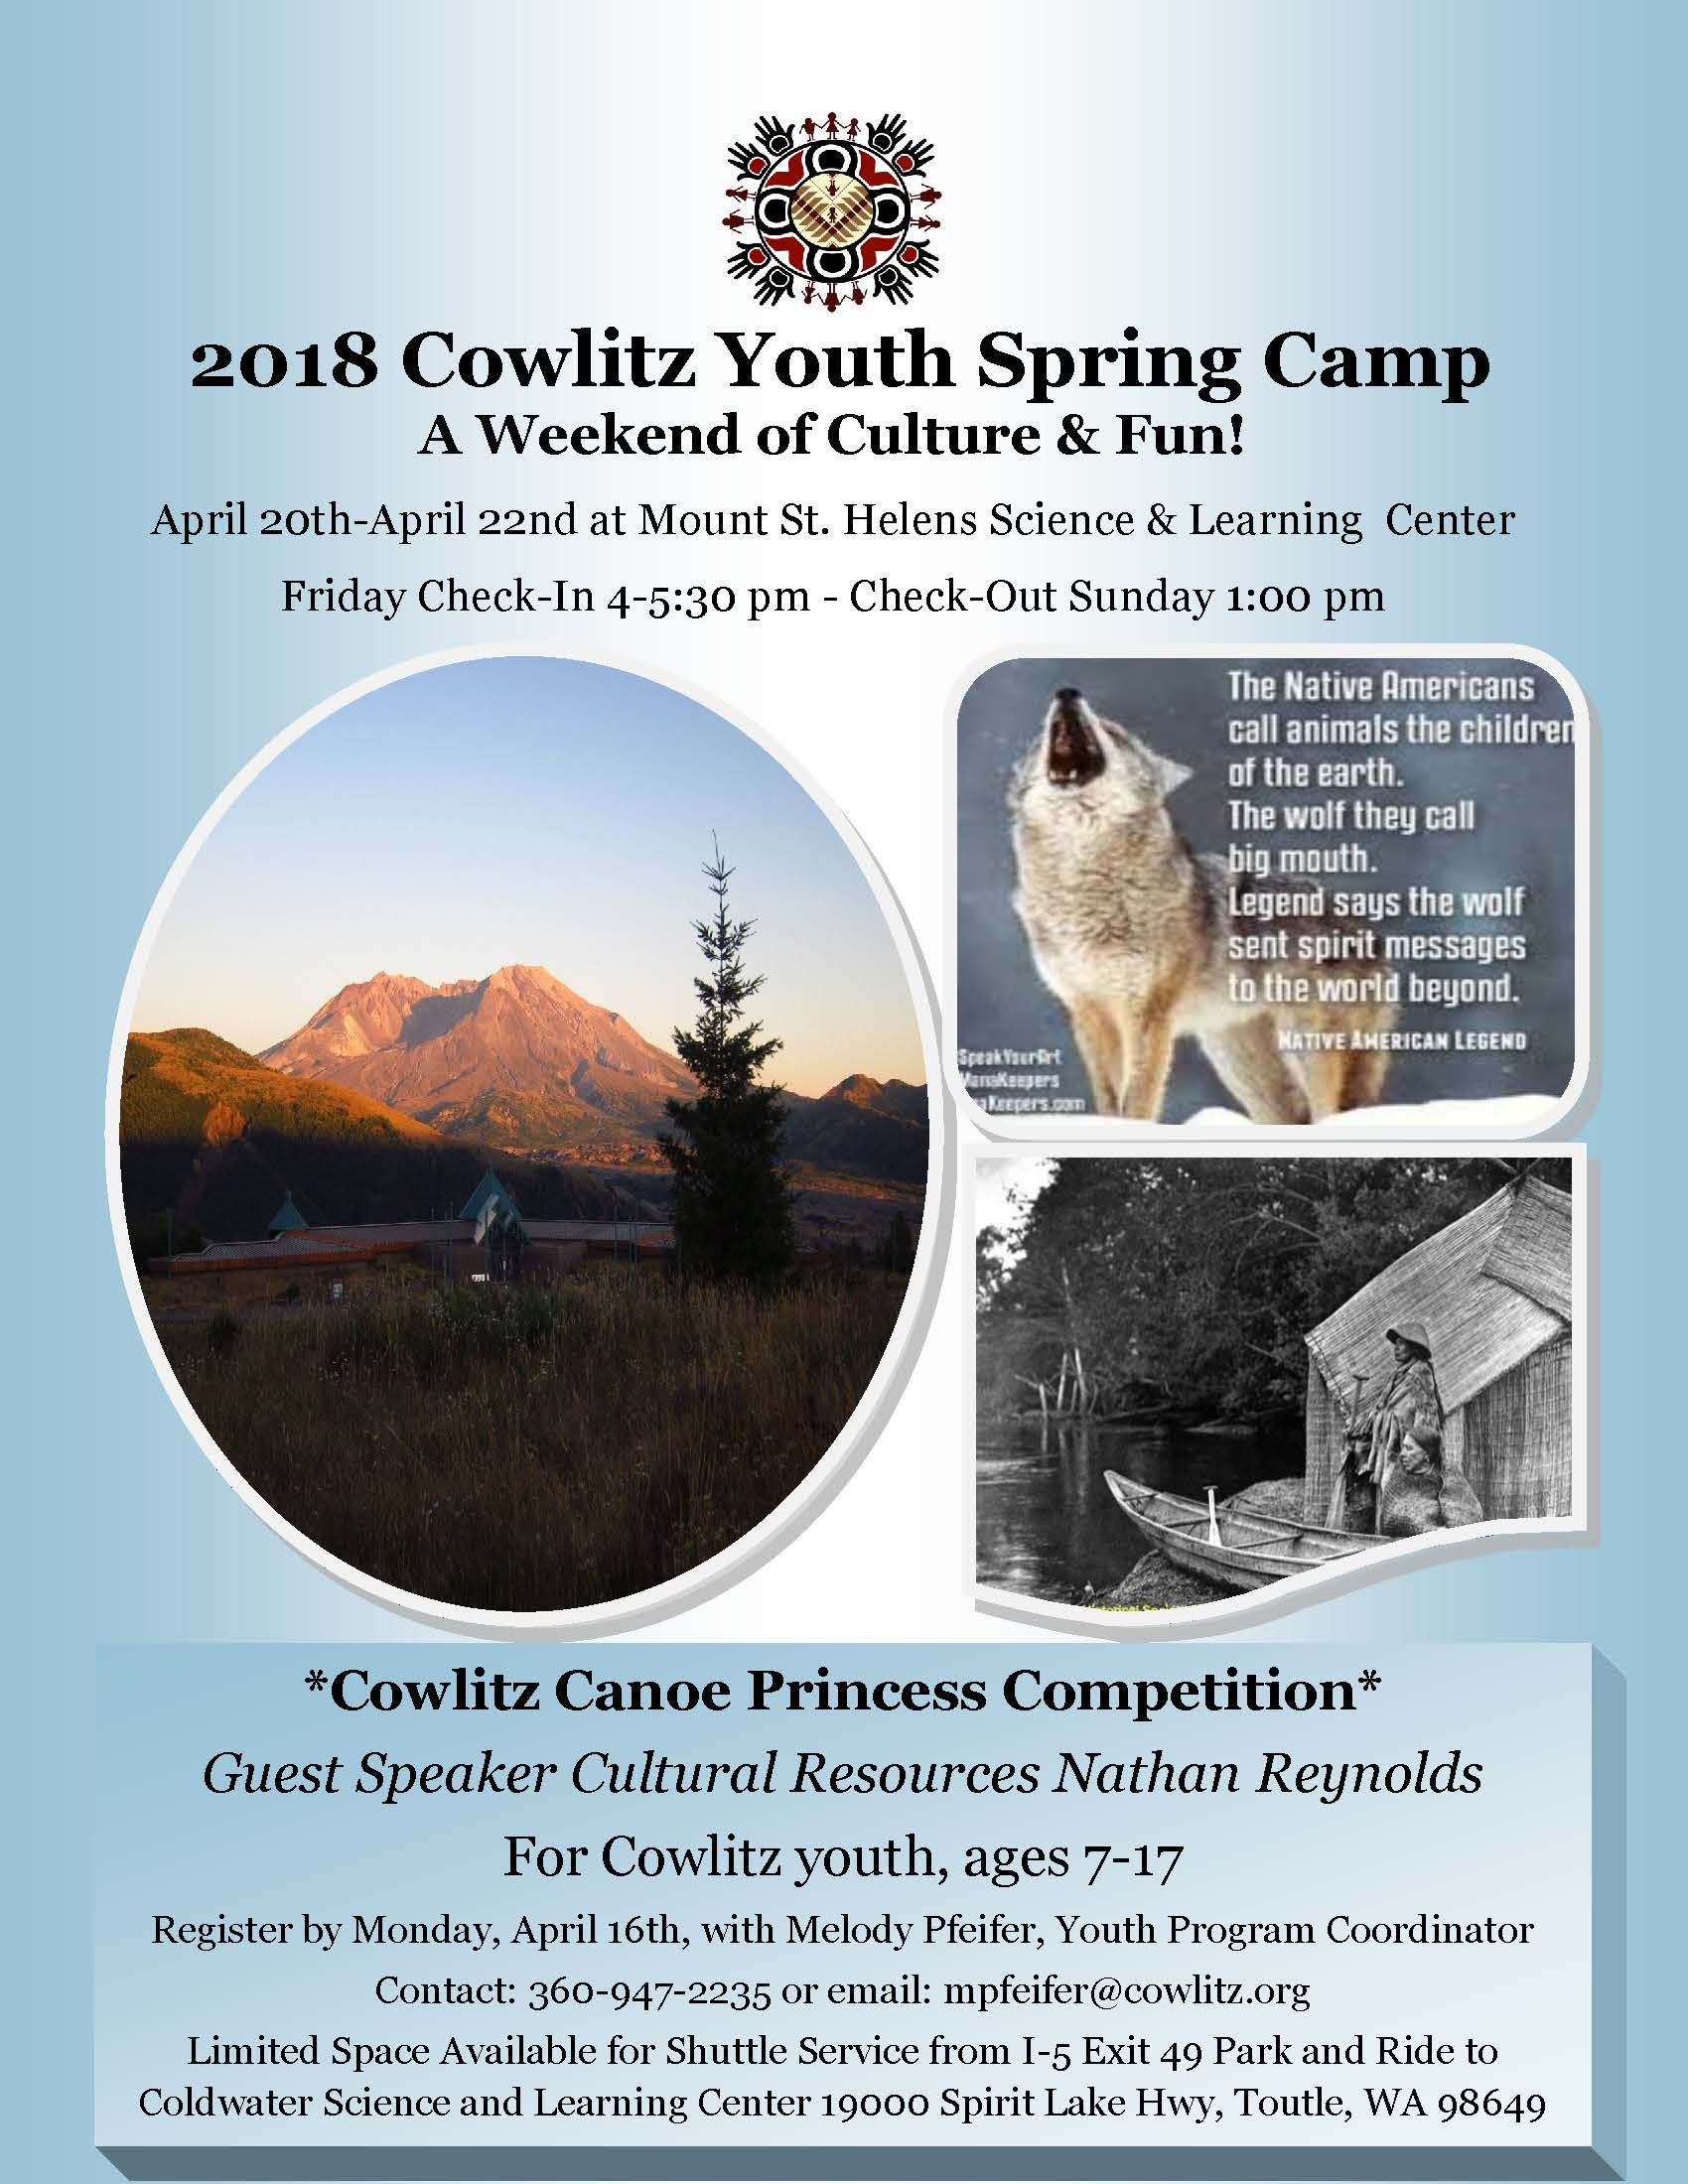 2018 Youth Spring Camp flyer